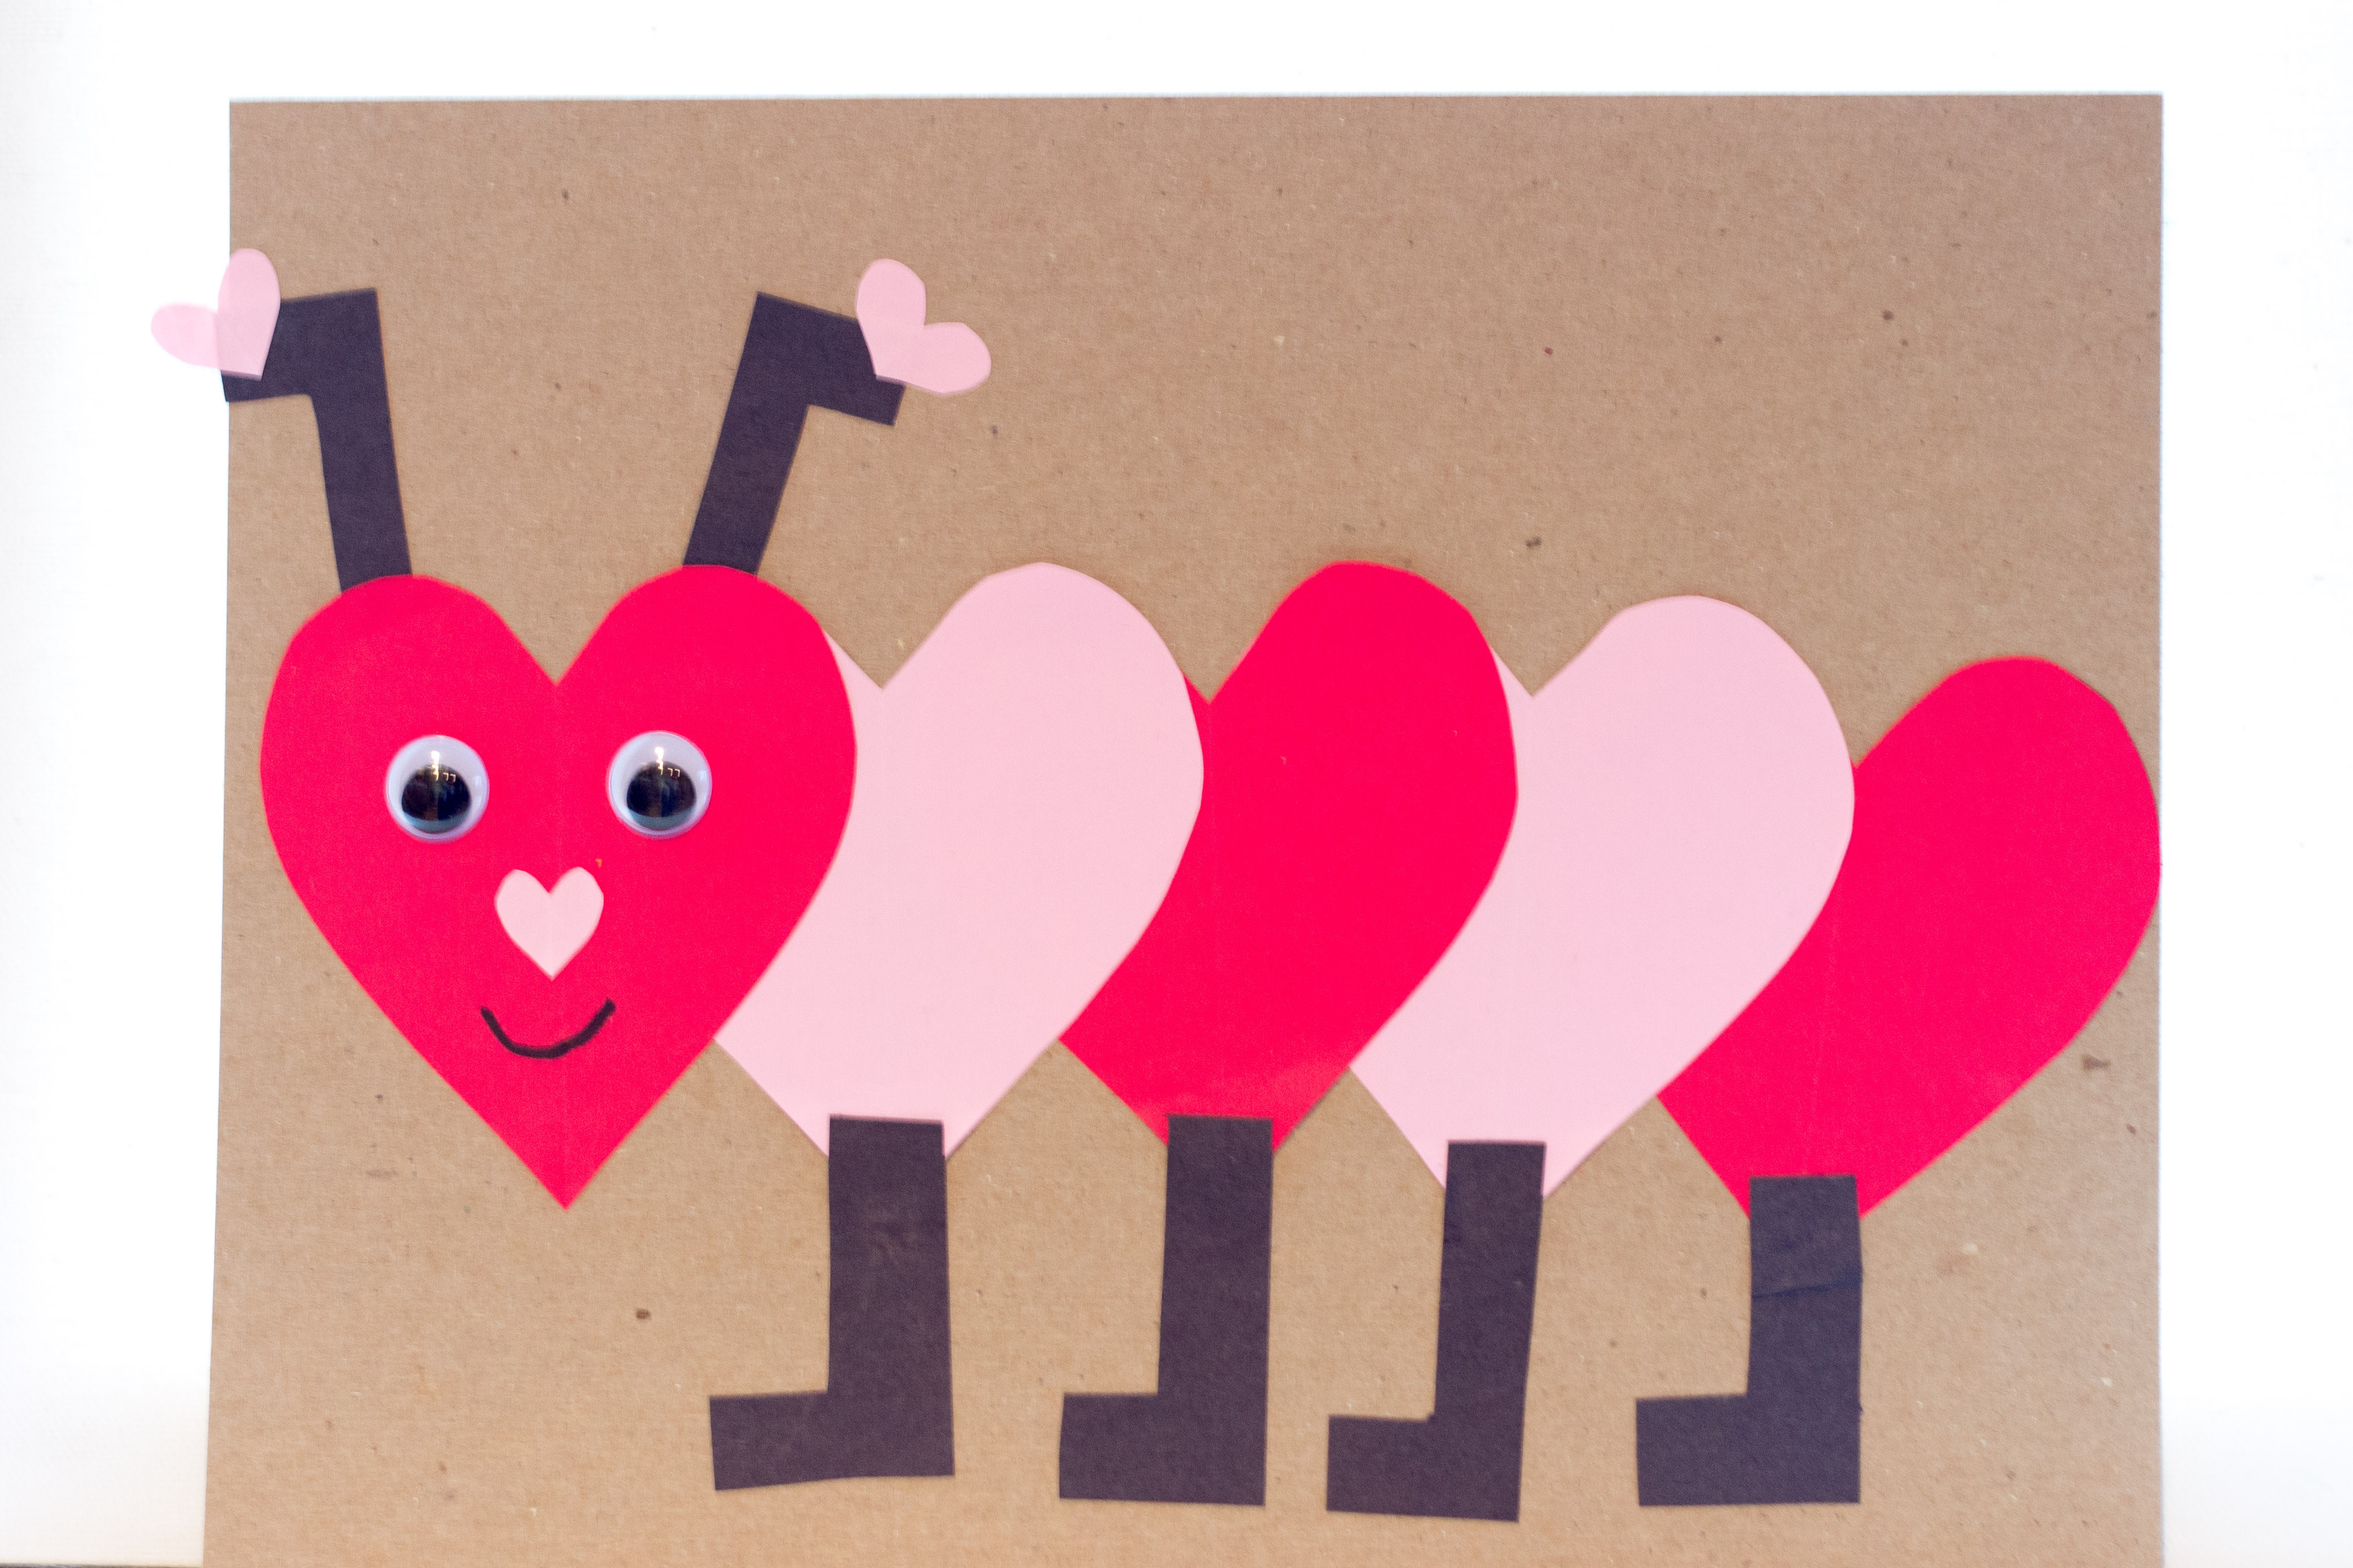 Best ideas about Valentine'S Day Craft Ideas For Preschoolers . Save or Pin kindergarten valentines project Now.